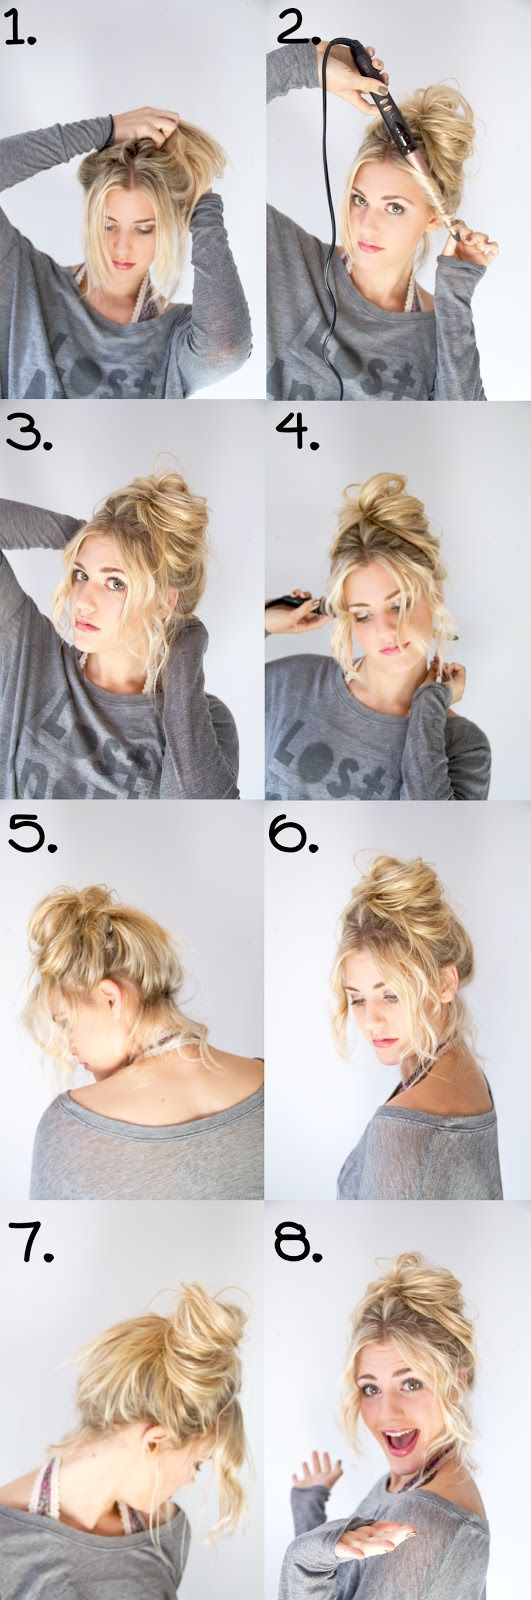 best 25+ easy messy hairstyles ideas on pinterest | buns for long